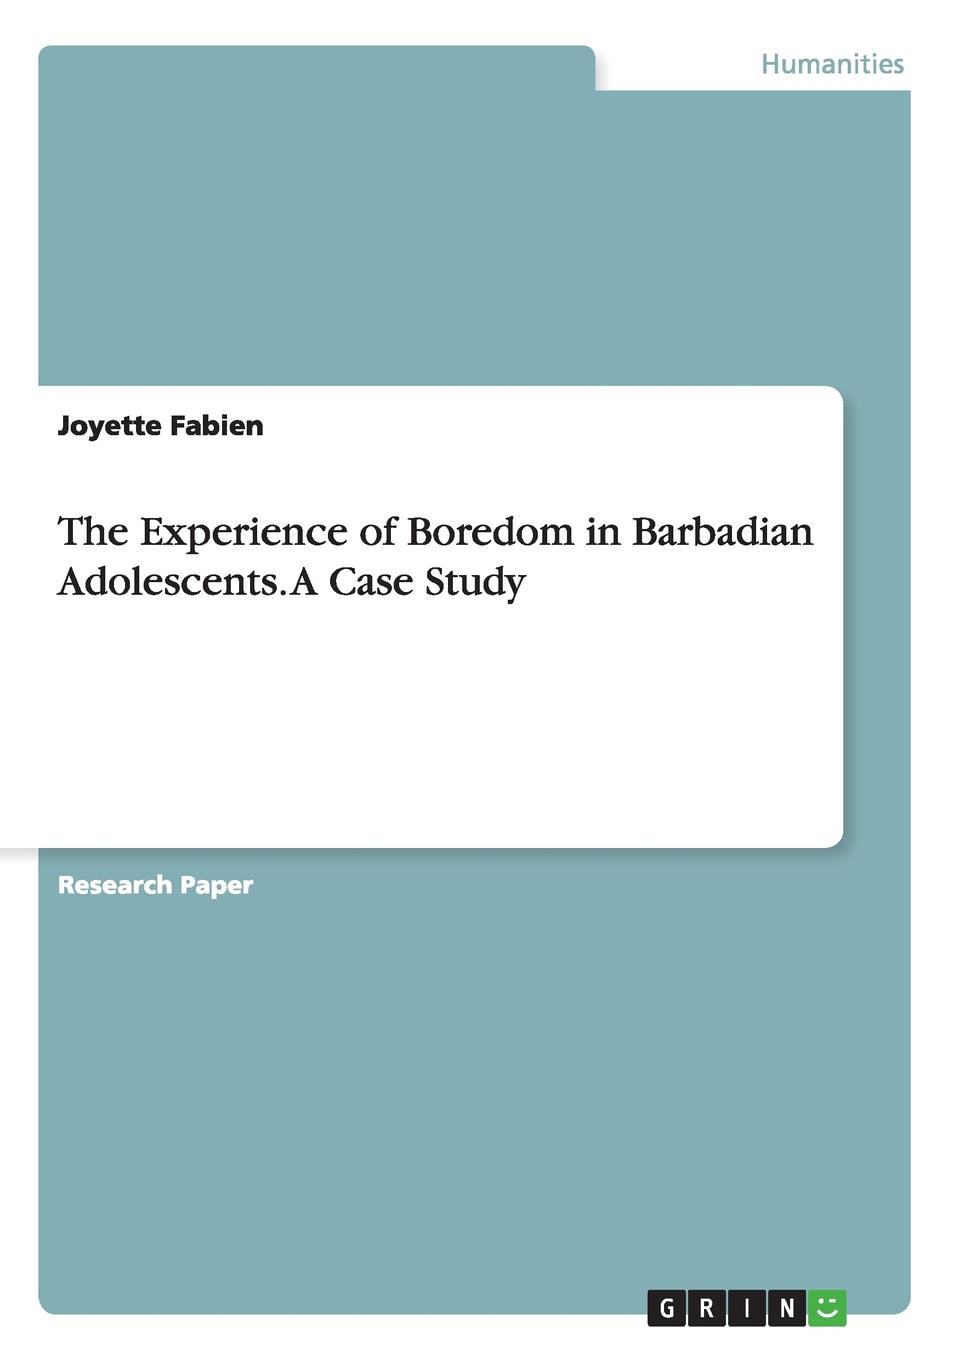 Joyette Fabien The Experience of Boredom in Barbadian Adolescents. A Case Study недорго, оригинальная цена